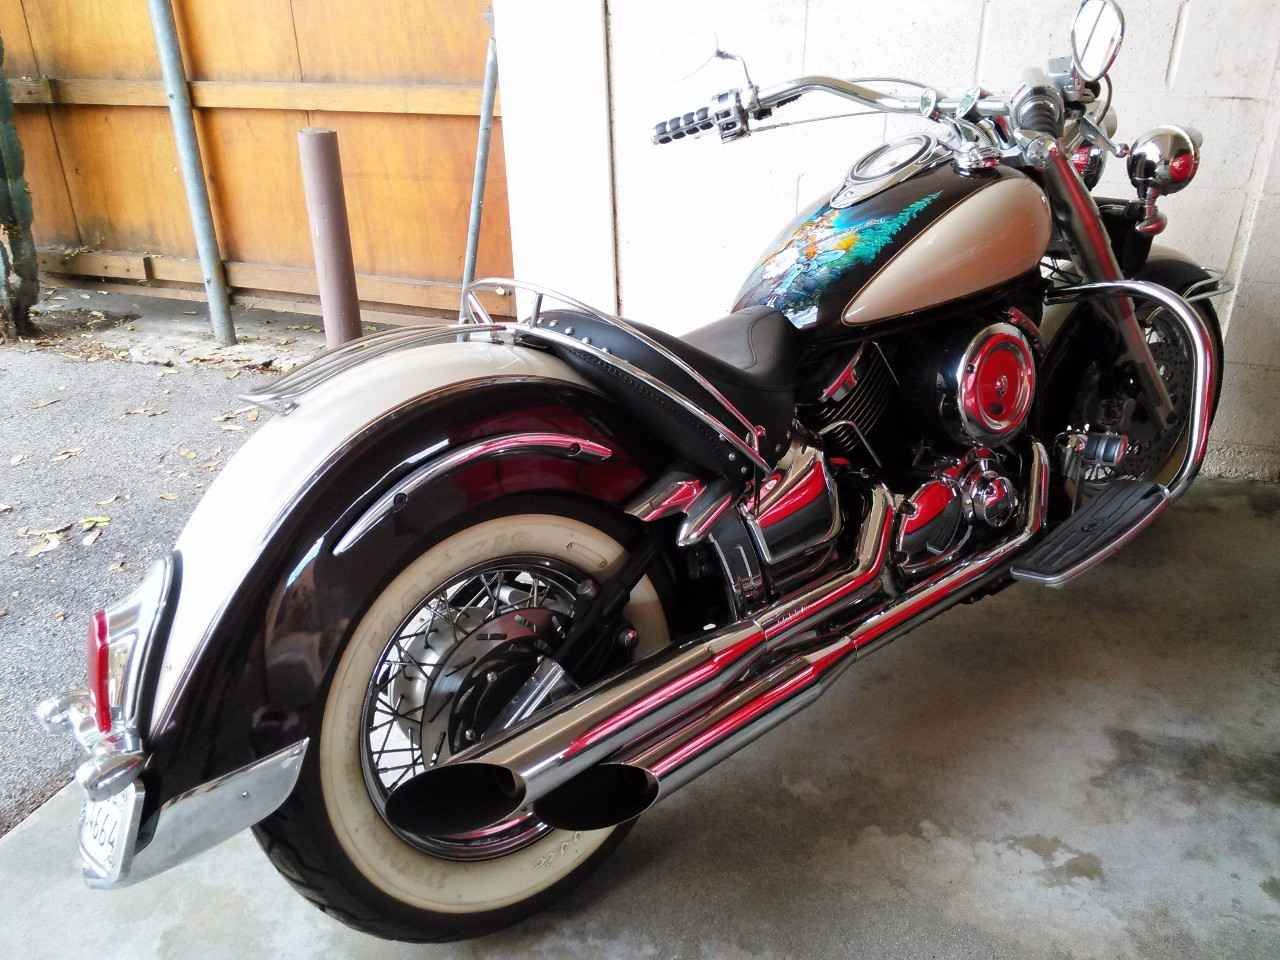 used 2000 yamaha v star 1100 classic motorcycles for sale in california ca 2000 yamaha v star. Black Bedroom Furniture Sets. Home Design Ideas